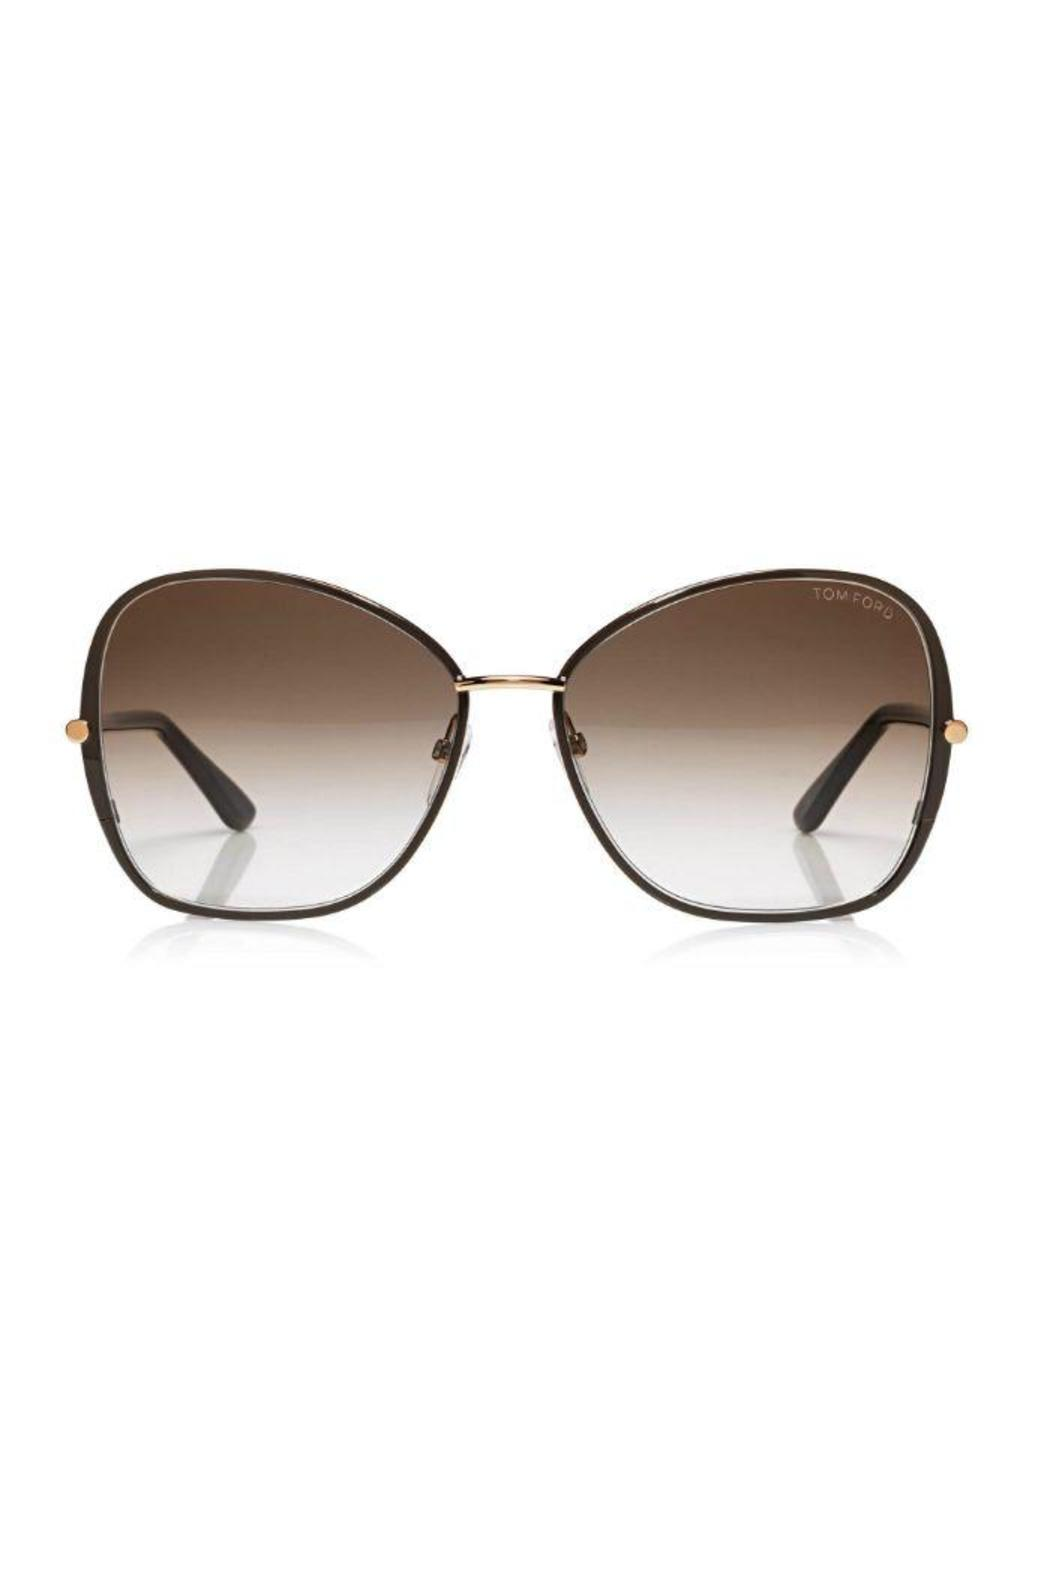 Of Solange Vintage From Soft Sunglasses Tom Ohio By Ford Peek Square 9DIYeEH2bW